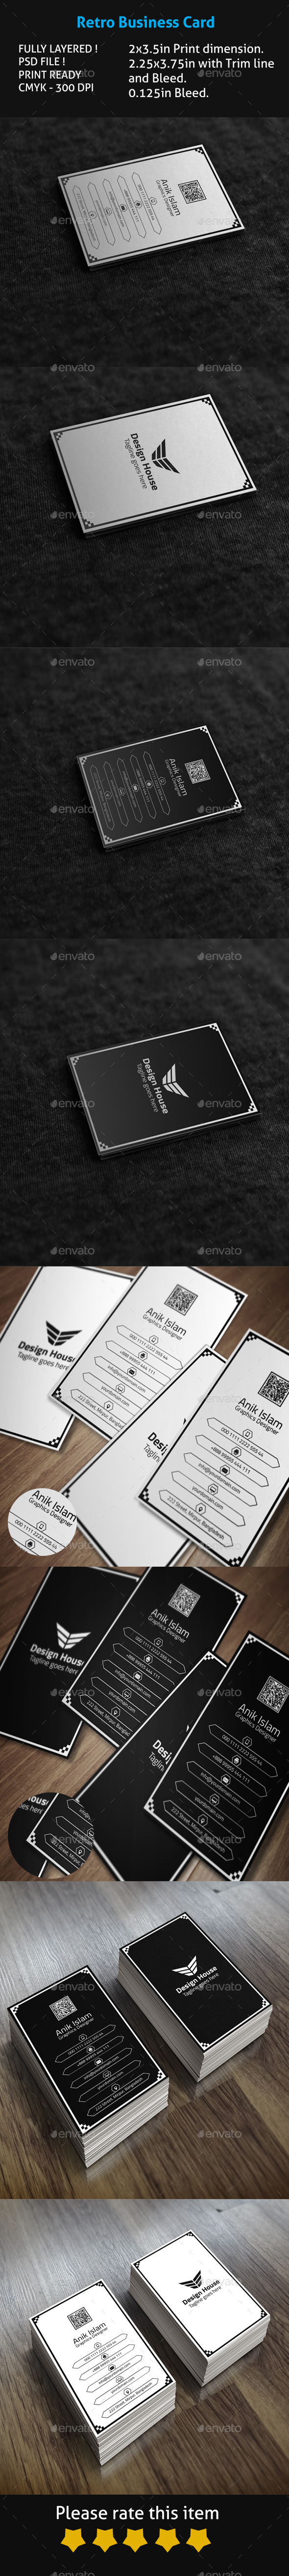 GraphicRiver Retro Business Card 9693586